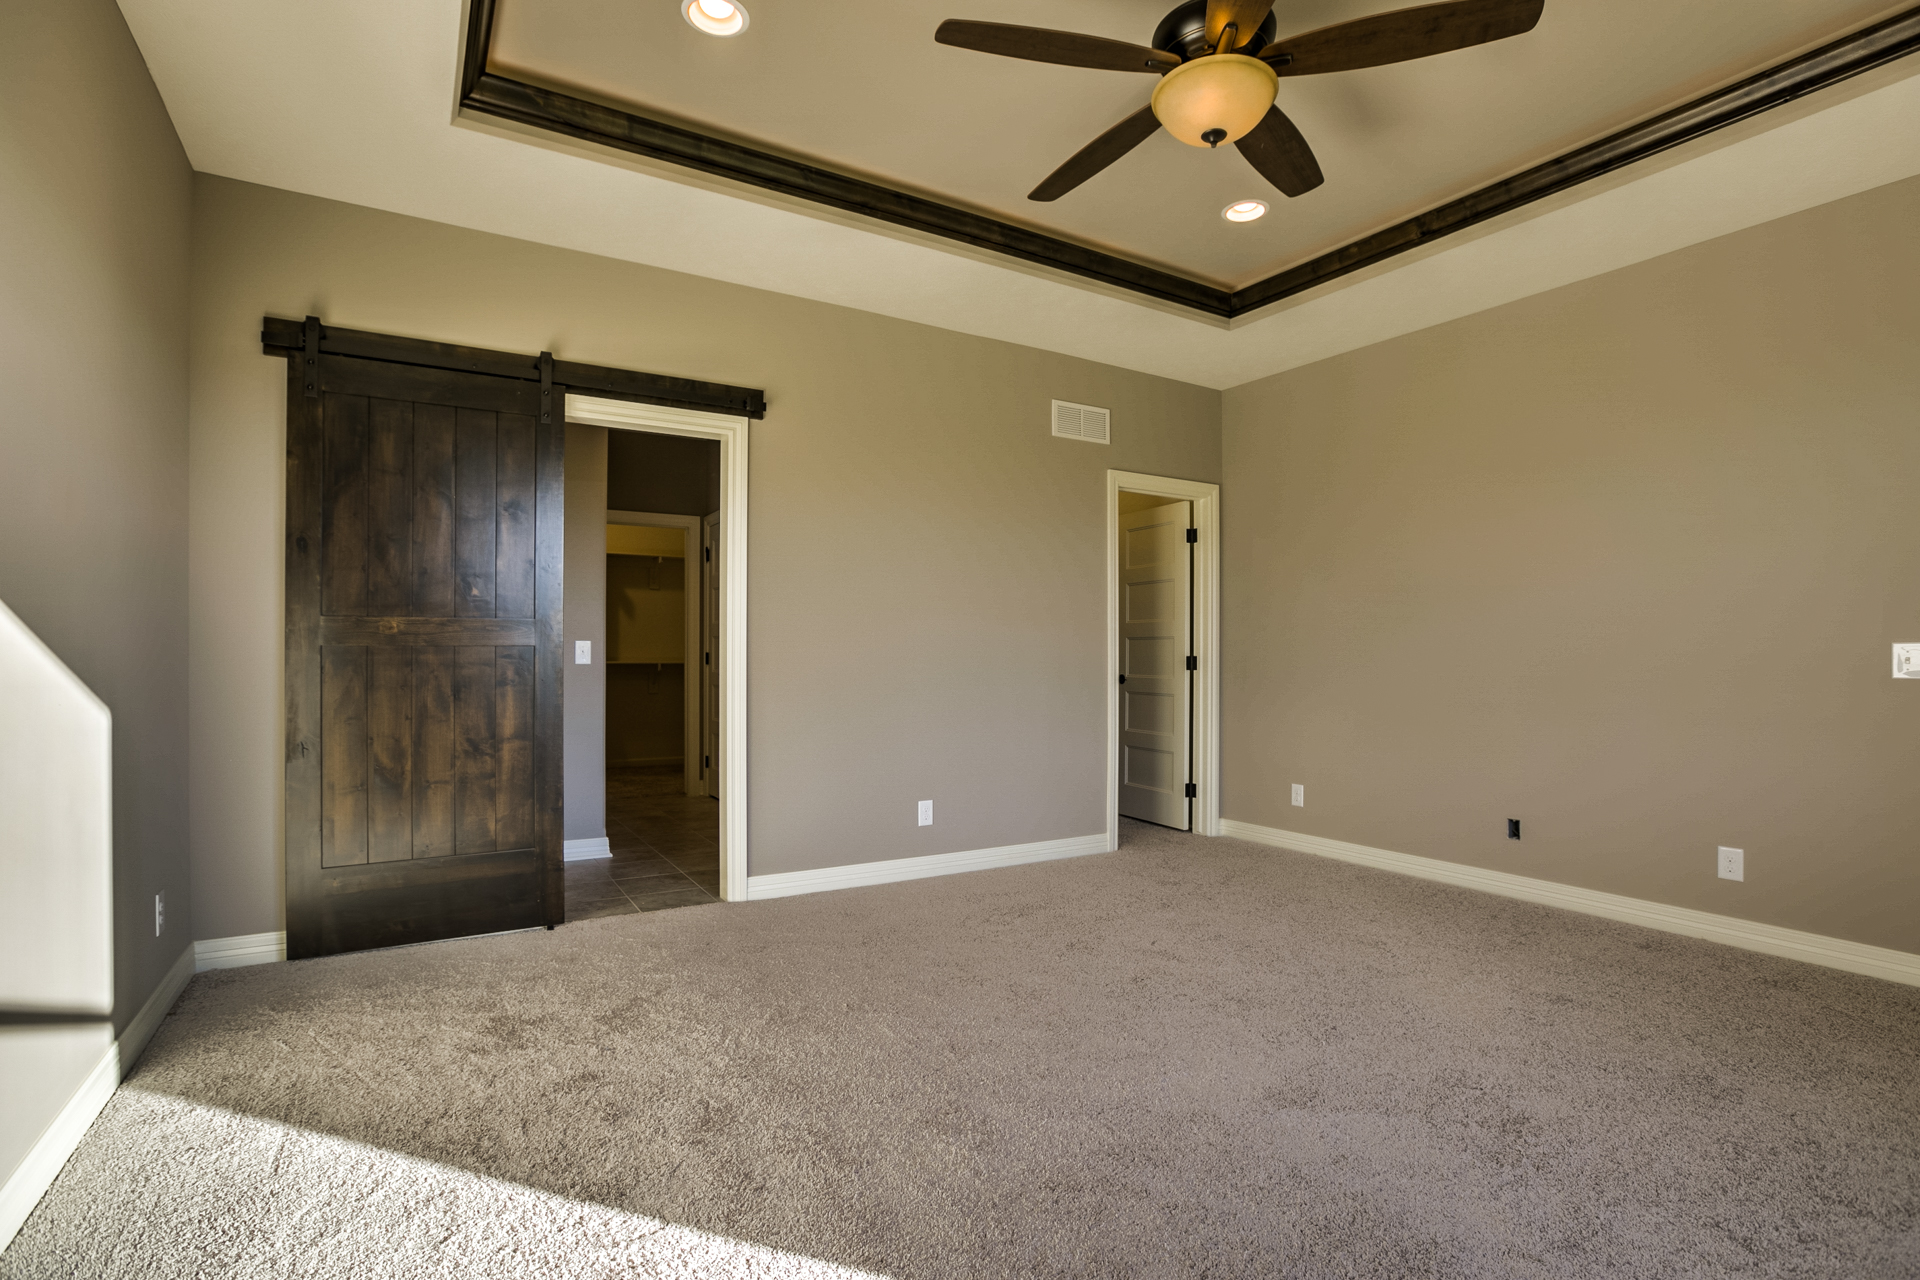 - Sliding Barn door into the bathroom from the master bedroom. 2 master bedroom closets.